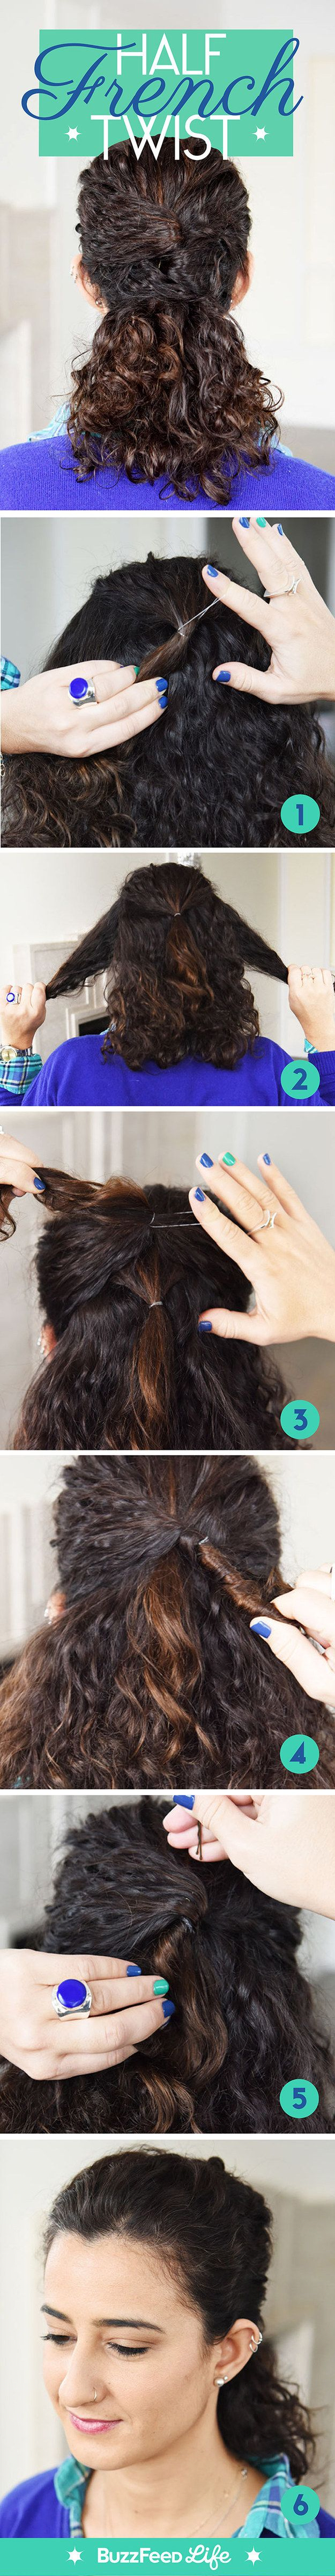 Hairstyles for School Buzzfeed